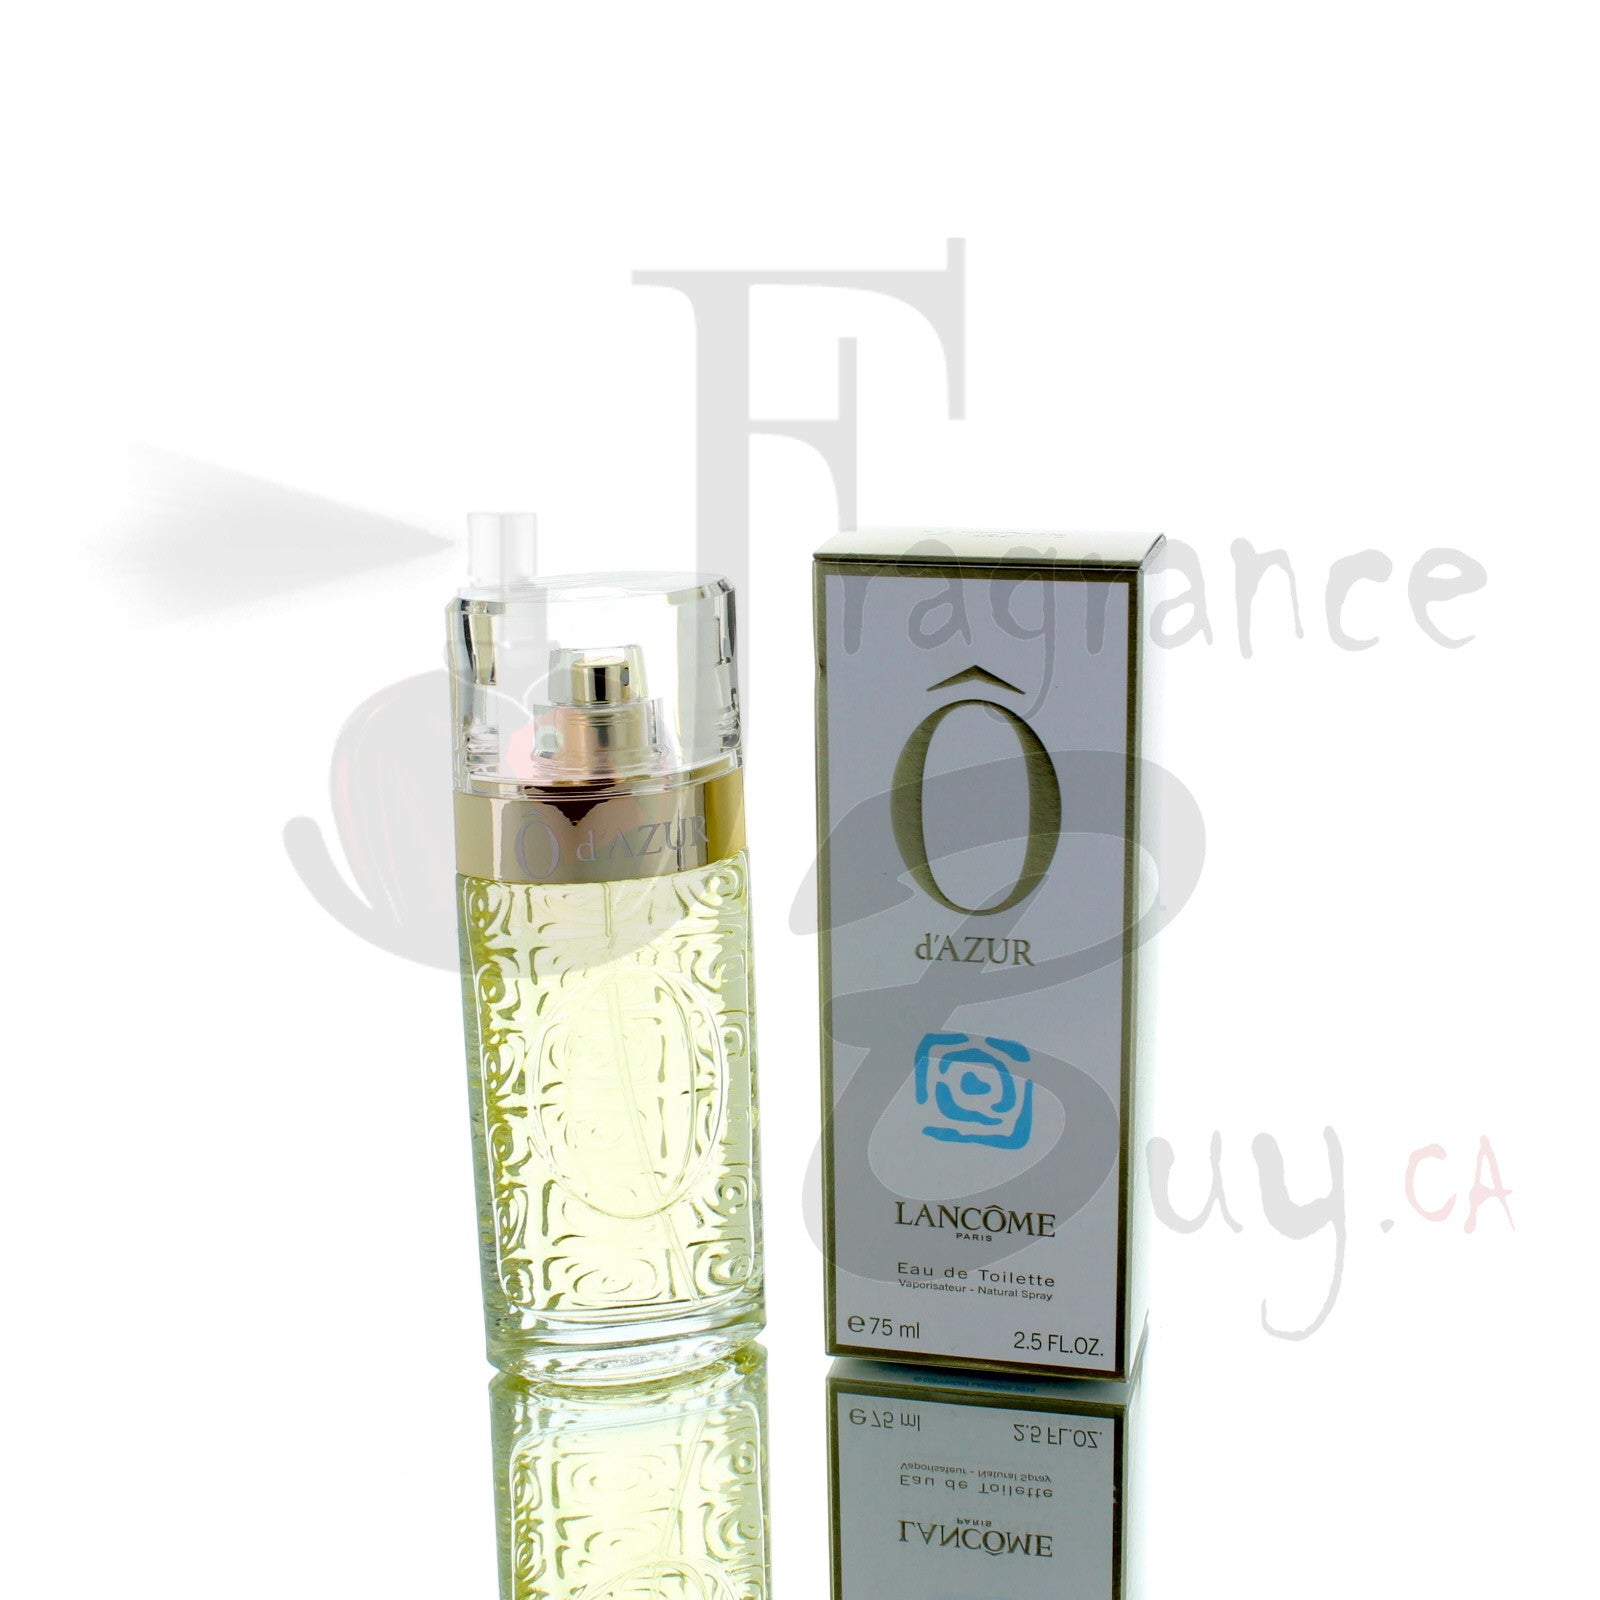 O d`Azur Lancome For Woman